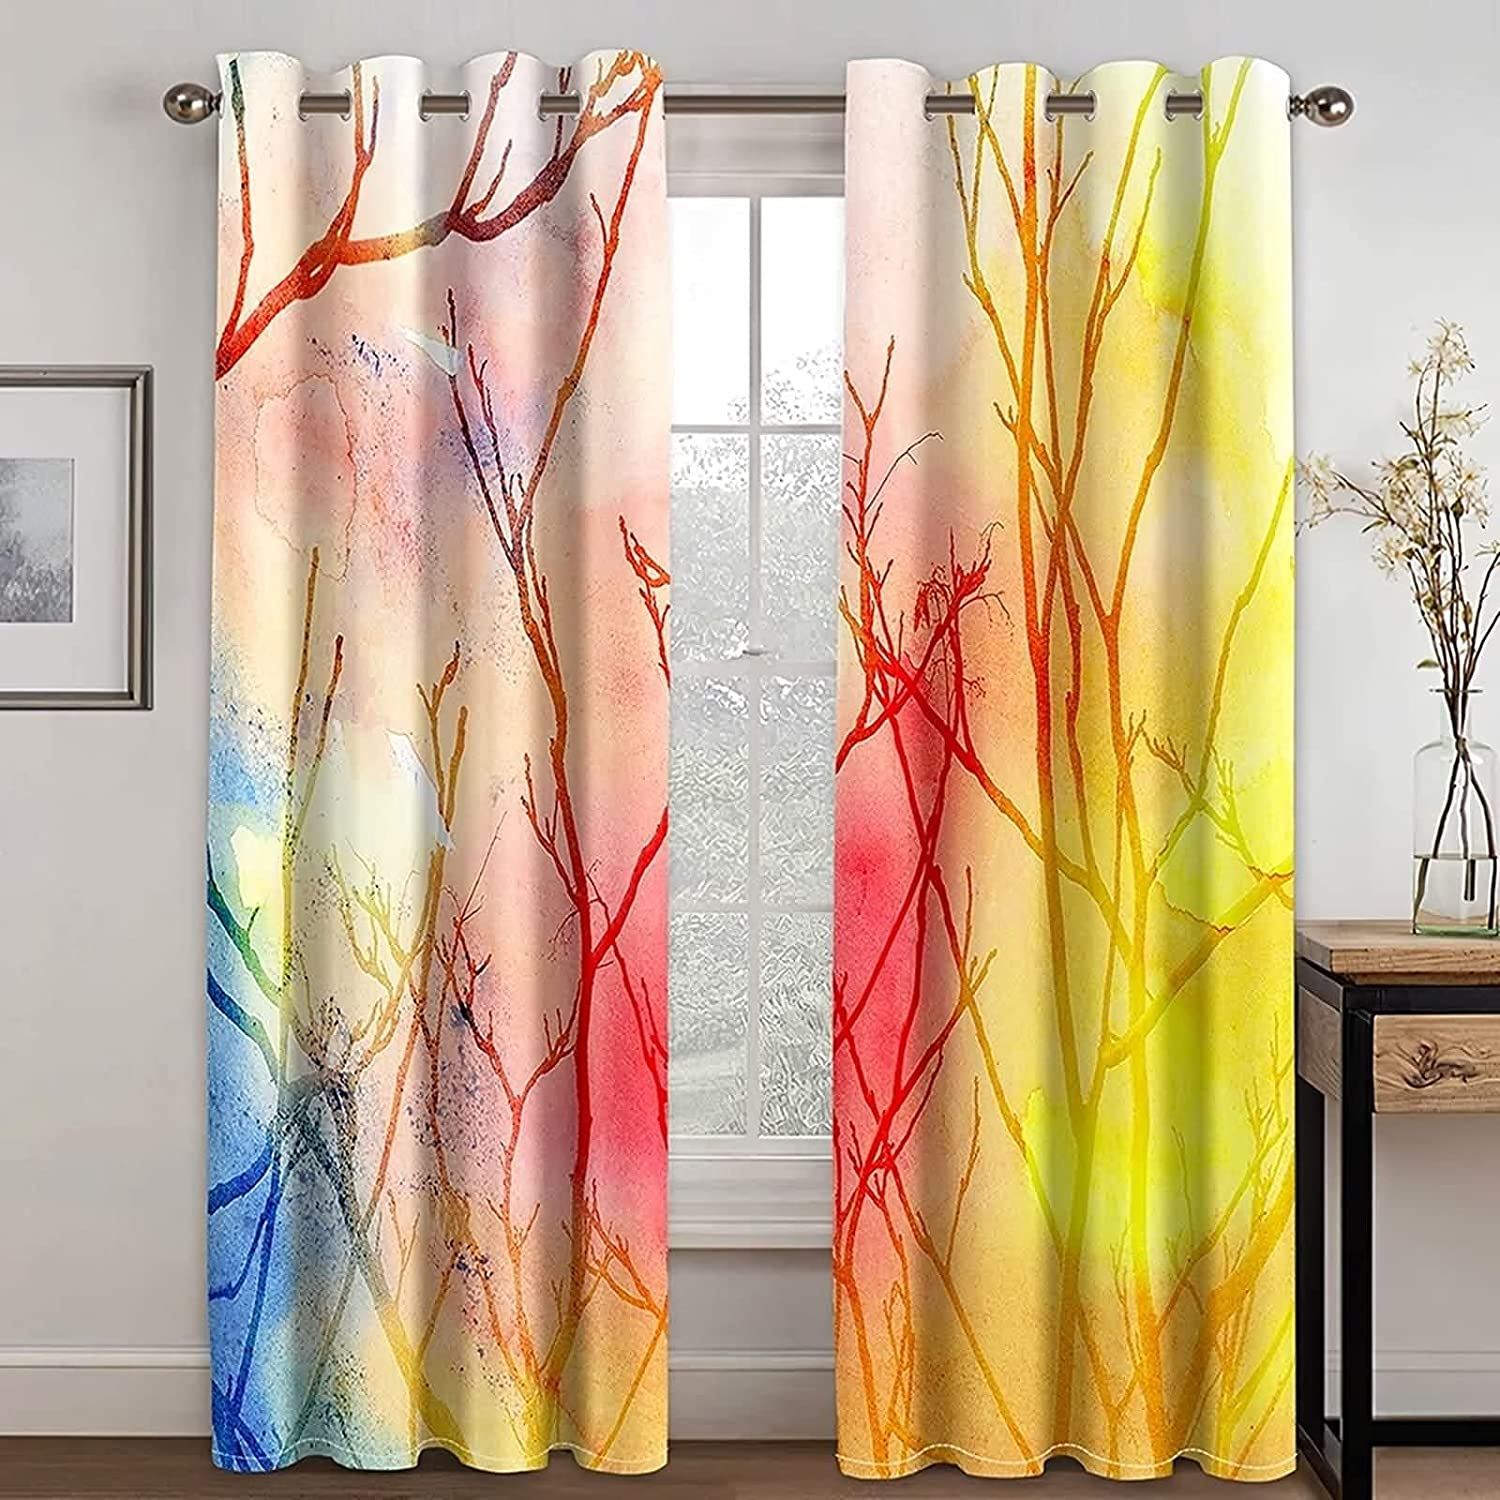 Aooaz Charlotte Mall Chic Curtains Small Window Polyester Free Shipping Cheap Bargain Gift 98 Panels 2